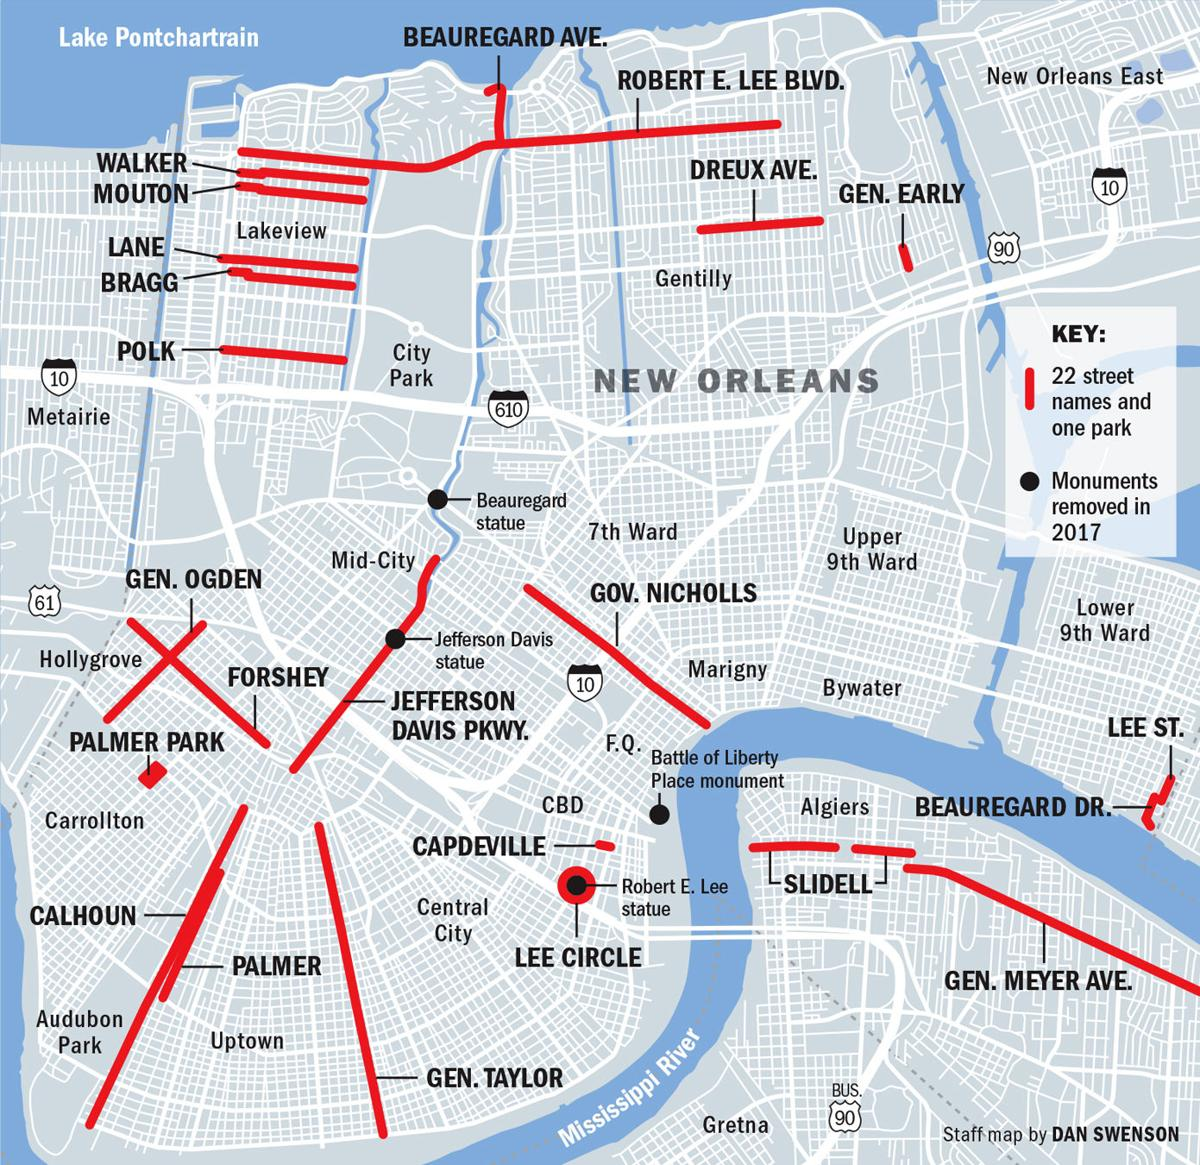 Map of Confederate street names in New Orleans